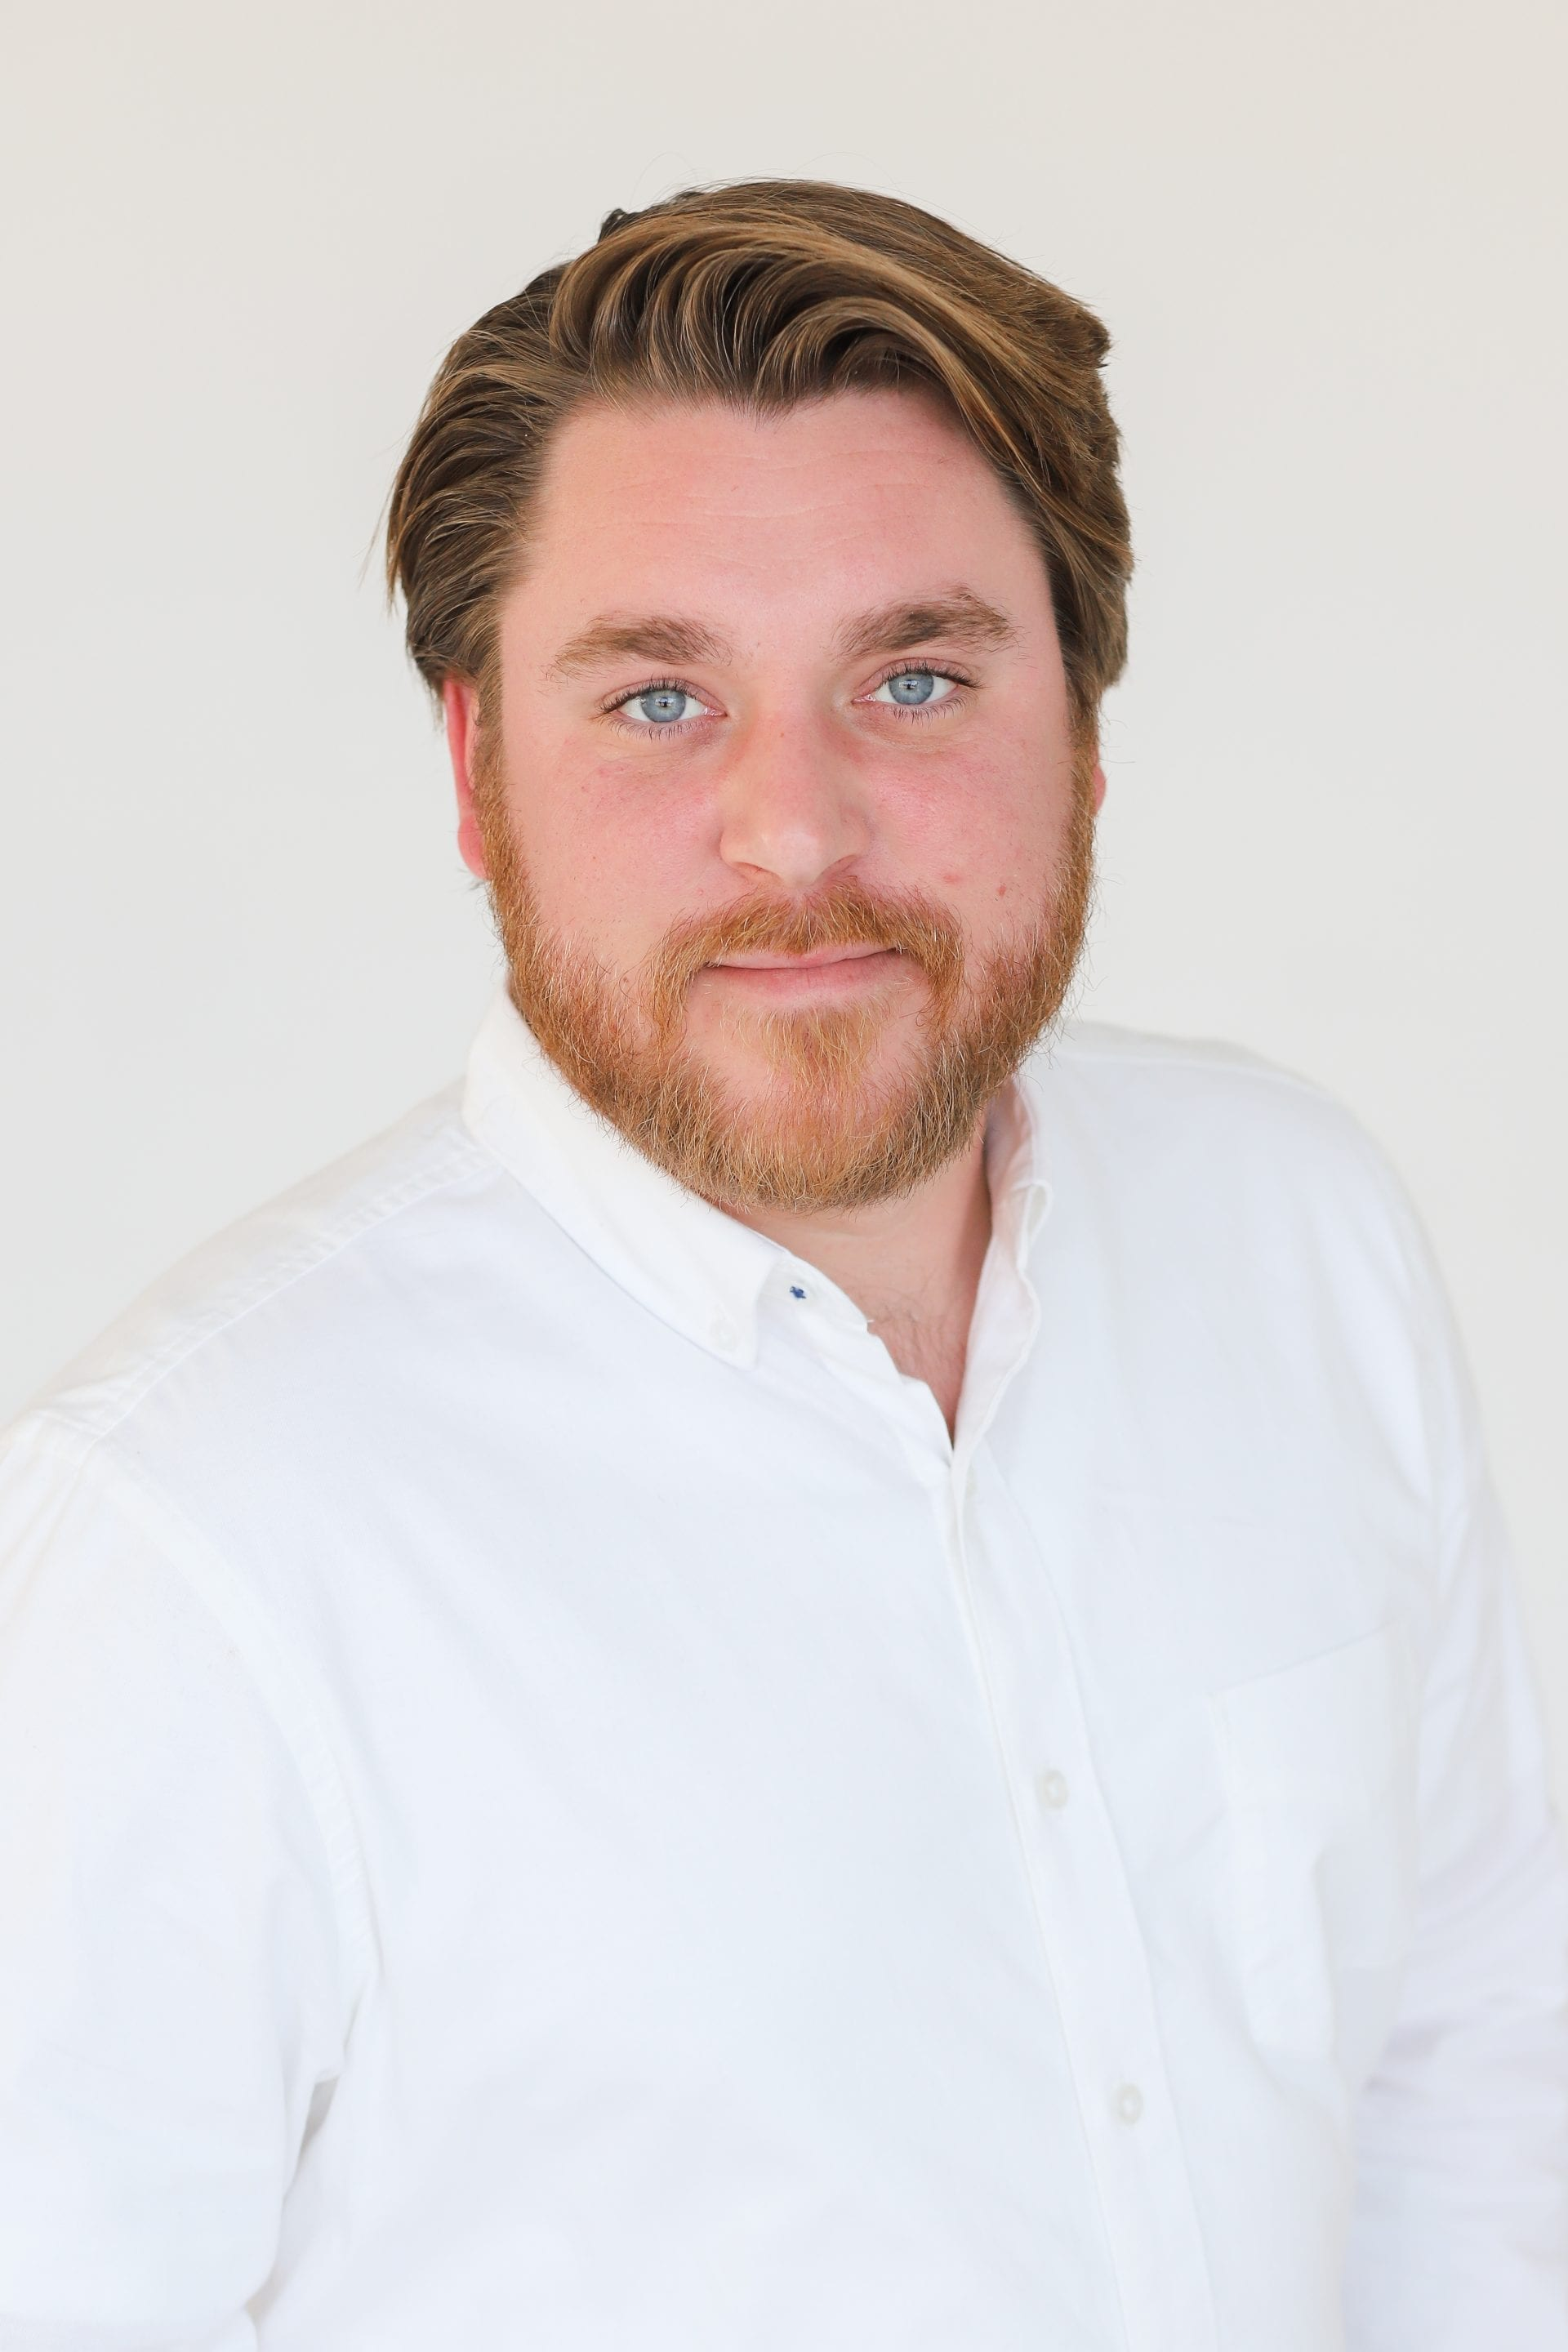 shawn minchey - Millennial Design + Build, Custom Home Builders in Dallas Texas, modern style homes, Property Evaluator, Interior Designers, using BIM Technology and Home 3D Model.